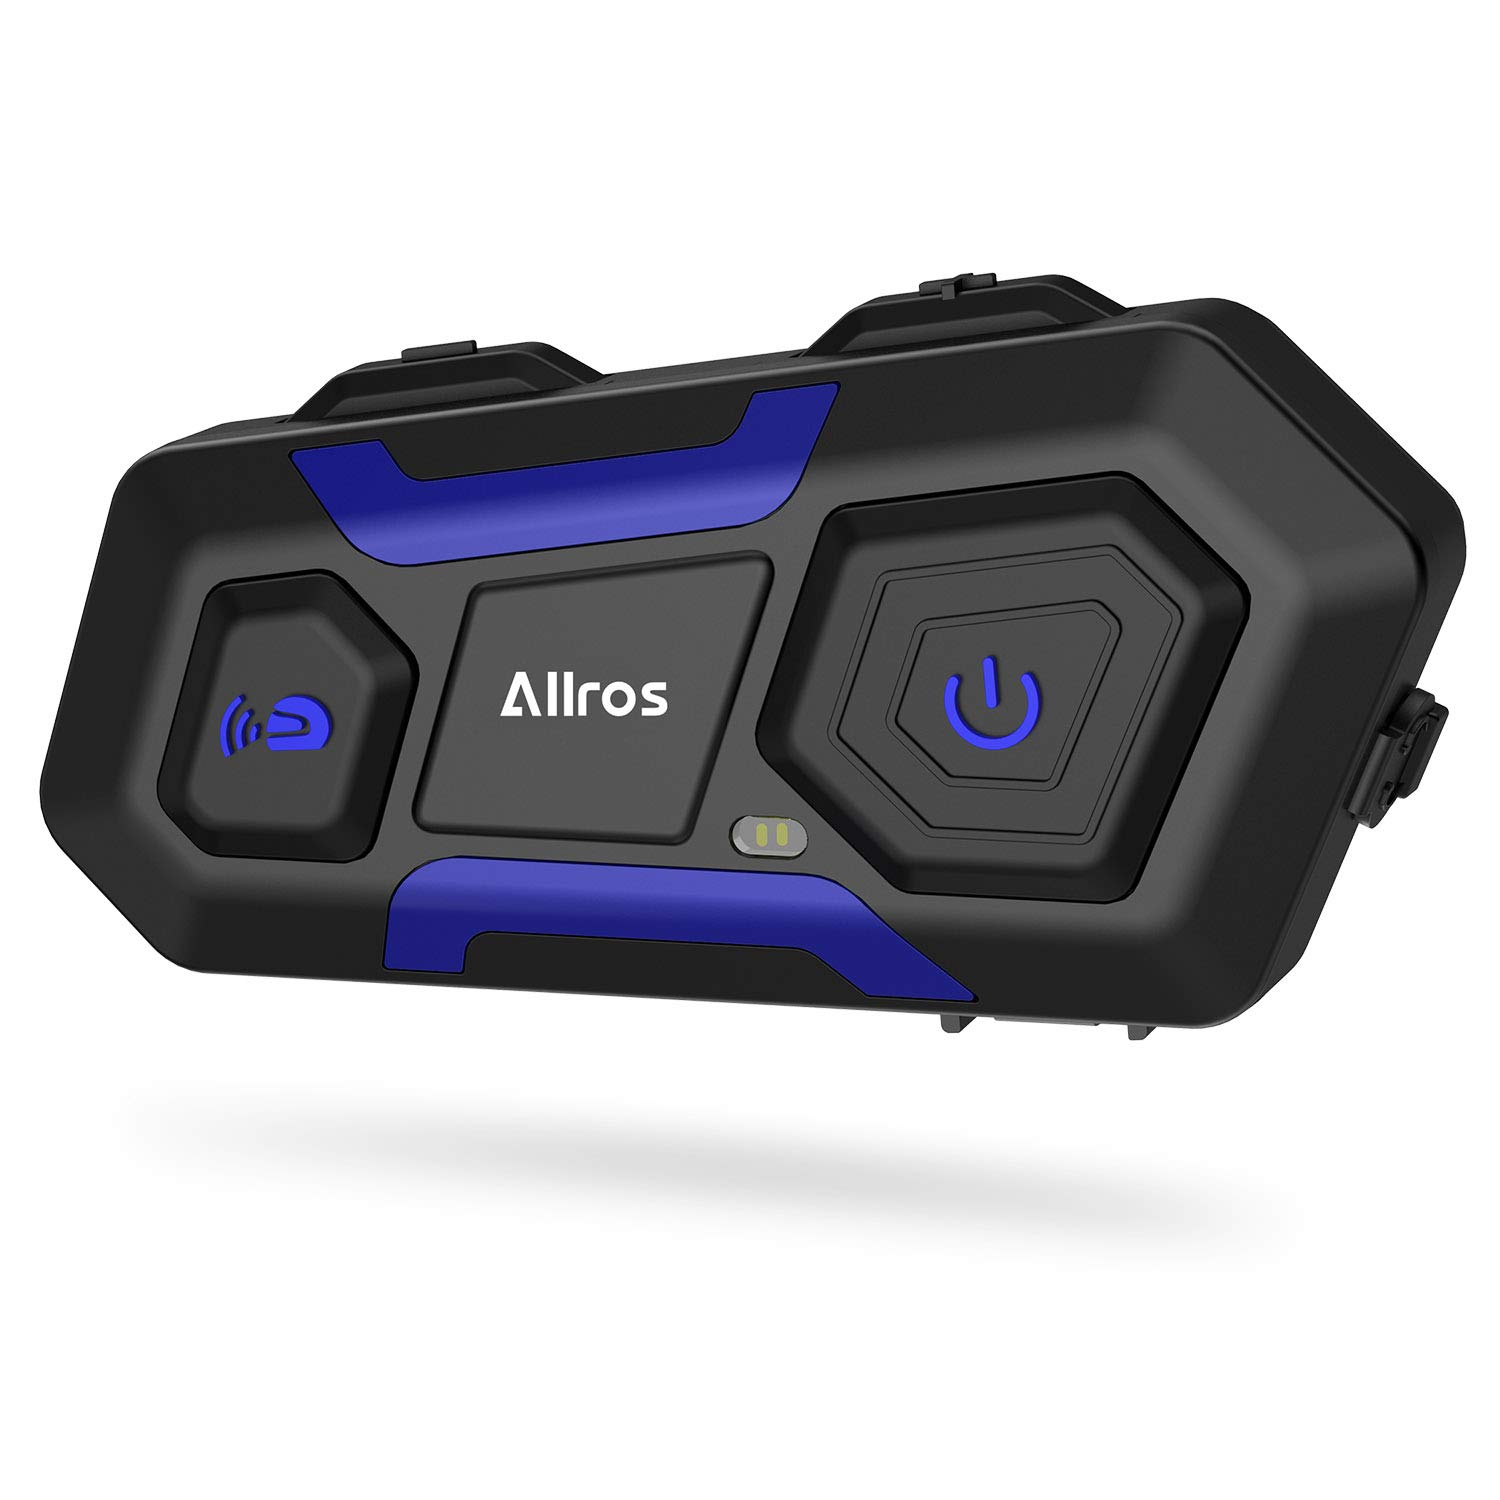 ALLROS T10 Bluetooth 3.0 Motorcycle Helmet Intercom Wireless Communication Headset Supports up to 3 Riders Hands-Free Group Call Communication for Motorbike Bike ATV Car Skiing (Single Headset)